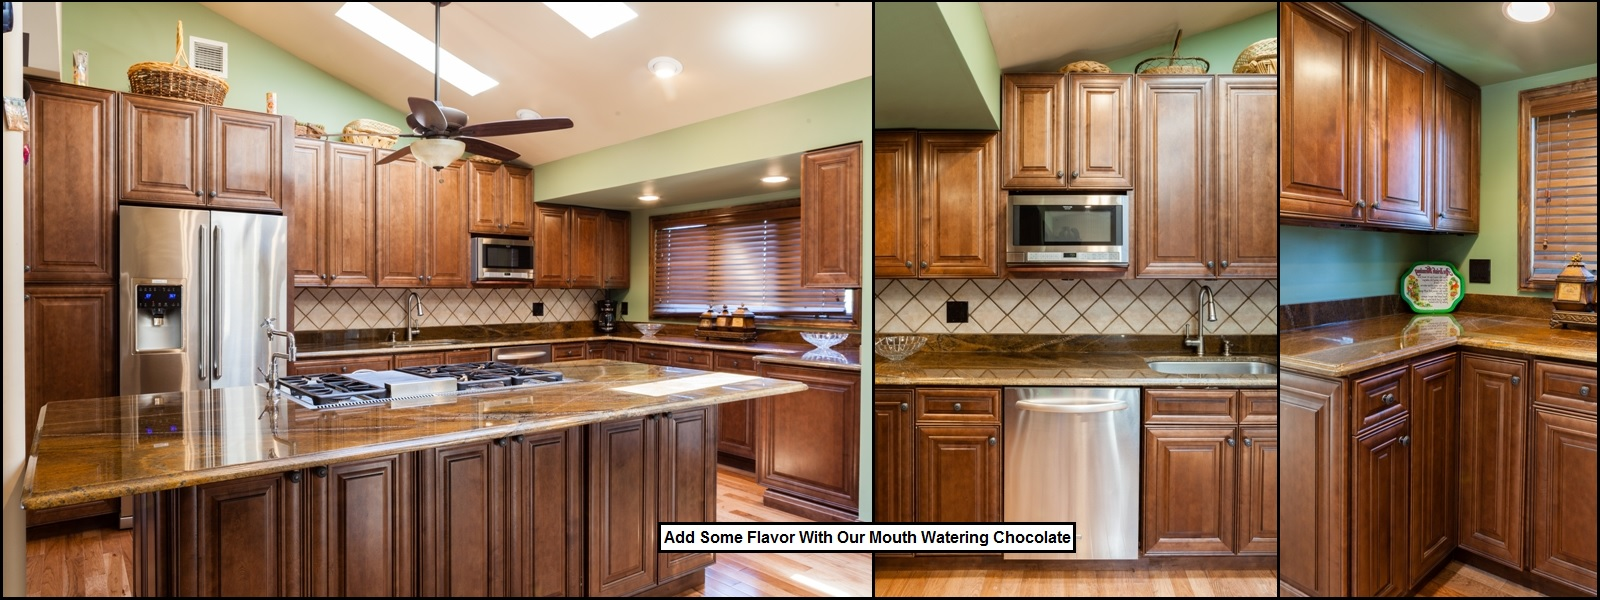 Kitchen Cabinets Scottsdale Alluring Scottsdale High Quality Kitchen And Cabinets & Countertops Decorating Design